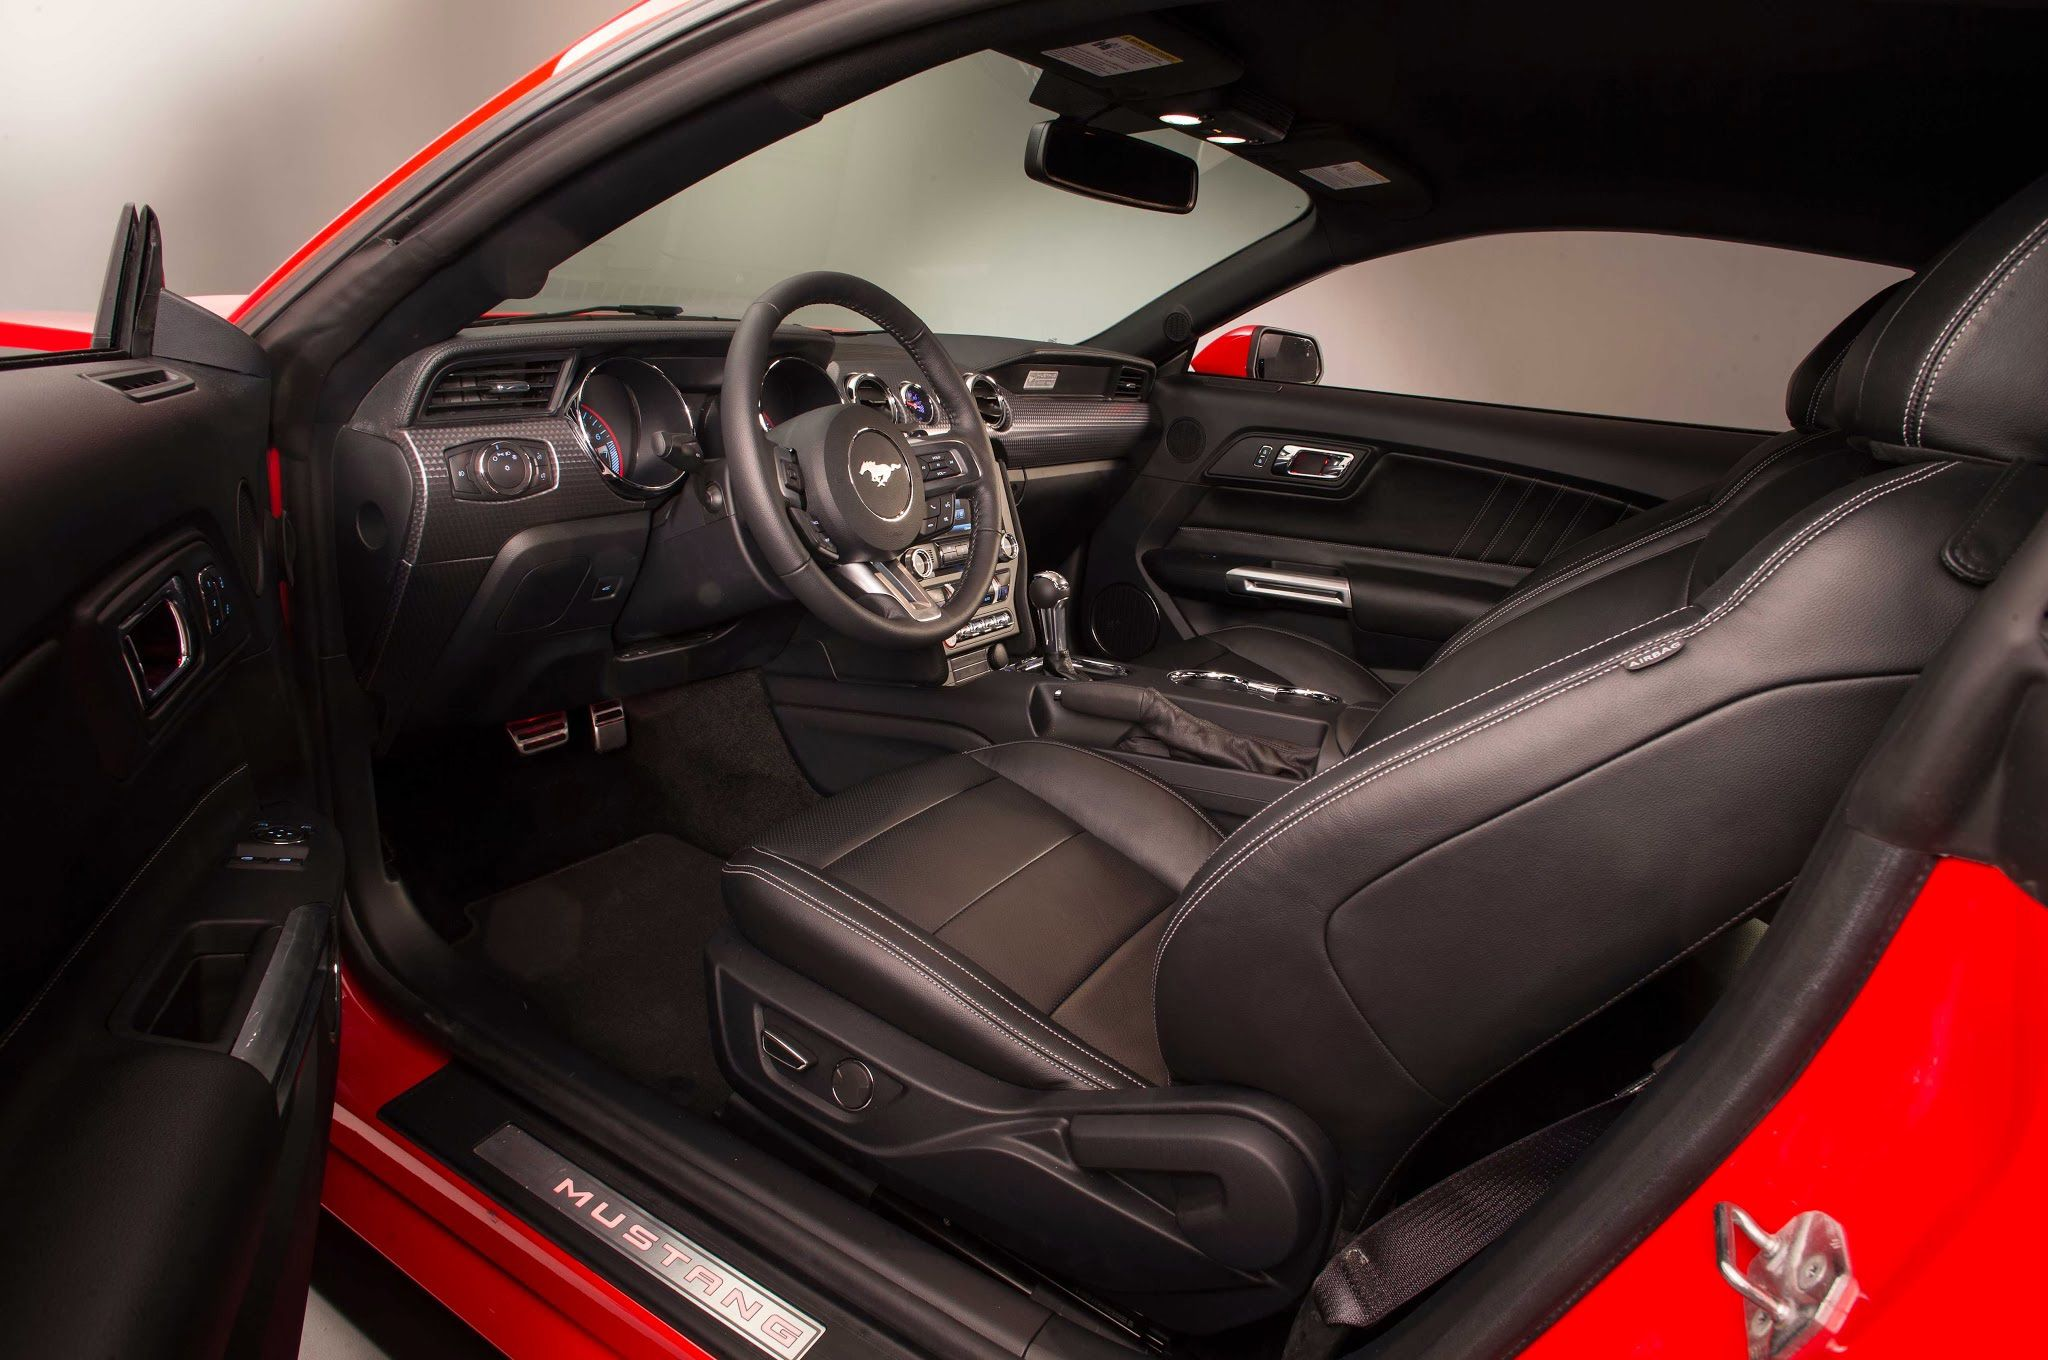 2015 Ford Mustang Interior   Note The Illuminated Sill Plate